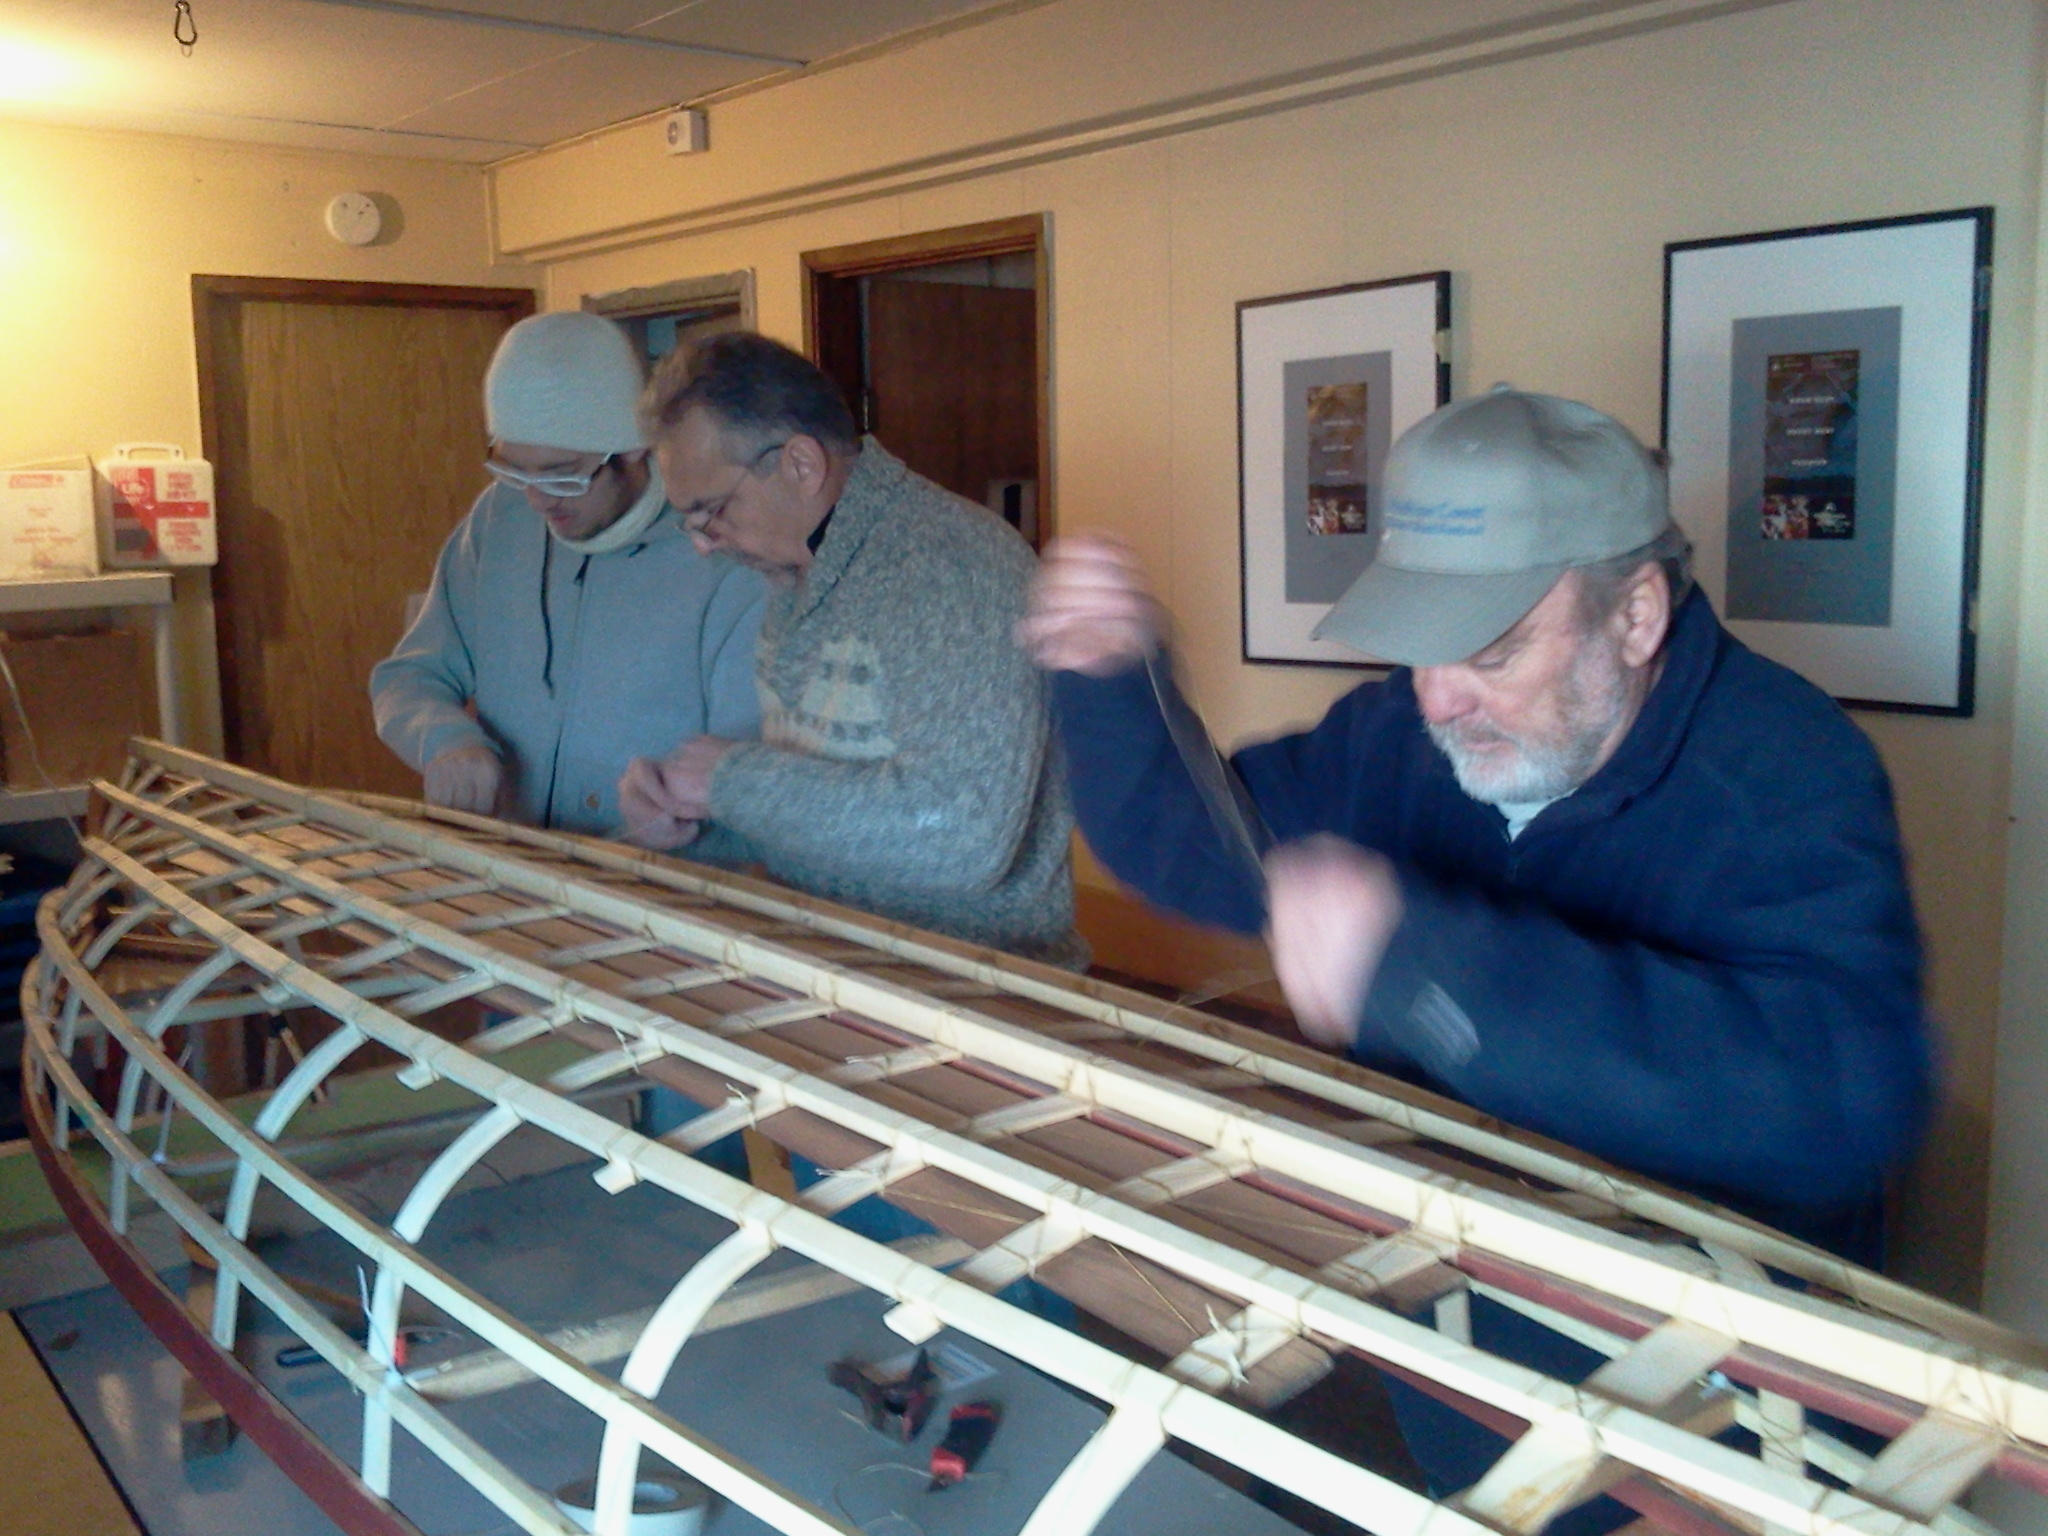 Boat Building Courses. Build a Lightweight Canoe or Rowboat.